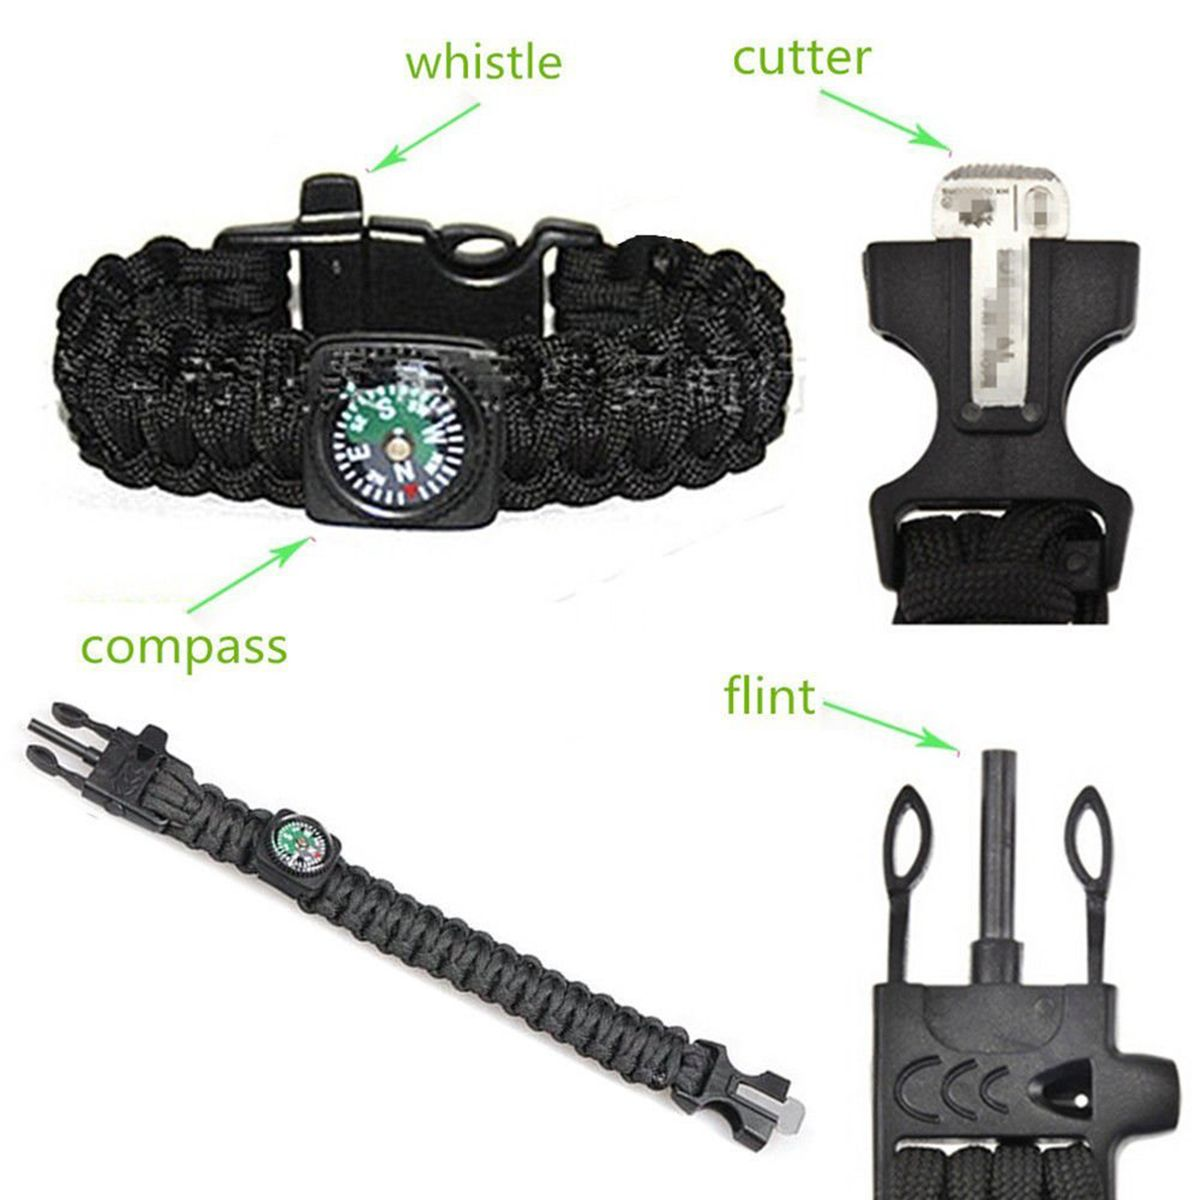 The Jewelbox Paracord Bracelet 5-in-1 Outdoor Flint Firesteel with Striker Blade-Scraper Compass and Whistle usable cord for Personal-Protection Survival Gear